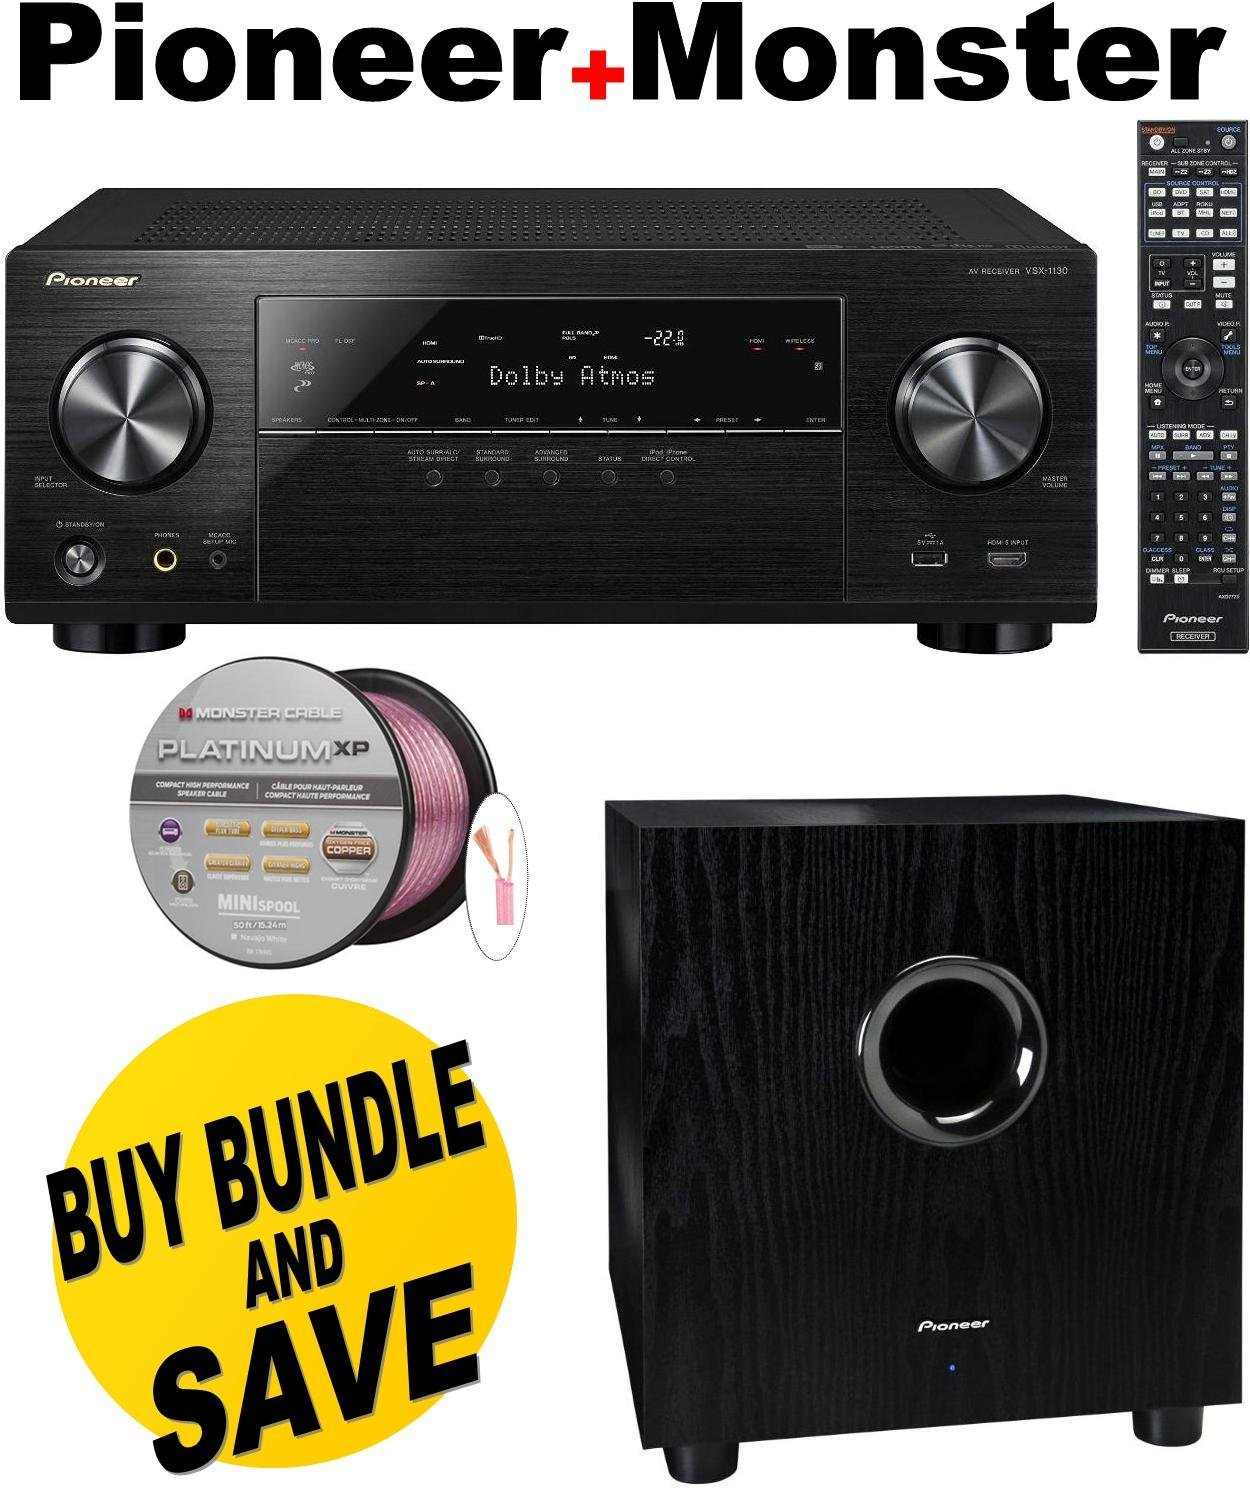 Pioneer VSX-1130-K 7.2-Channel AV Receiver with Built-In Bluetooth and Wi-Fi (Black) + Pioneer SW-8MK2 Andrew Jones Designed 100-Watt Powered Subwoofer Bundle